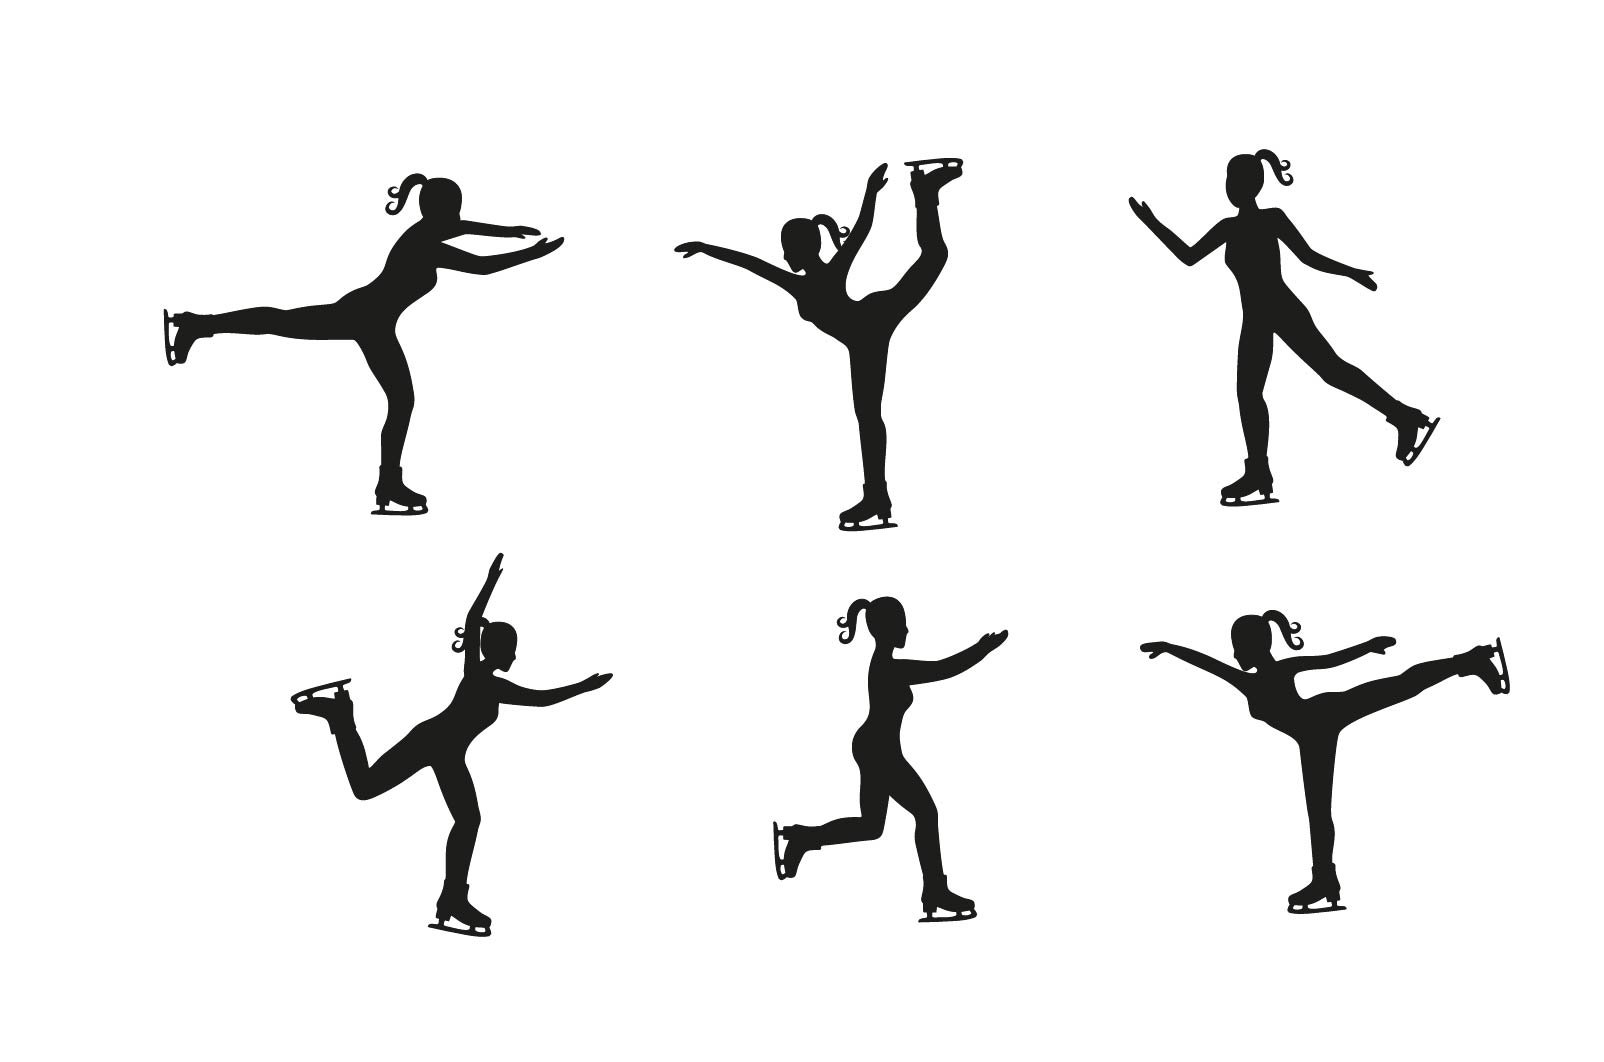 ice skater silhouette figure skaters silhouette at getdrawings free download silhouette skater ice